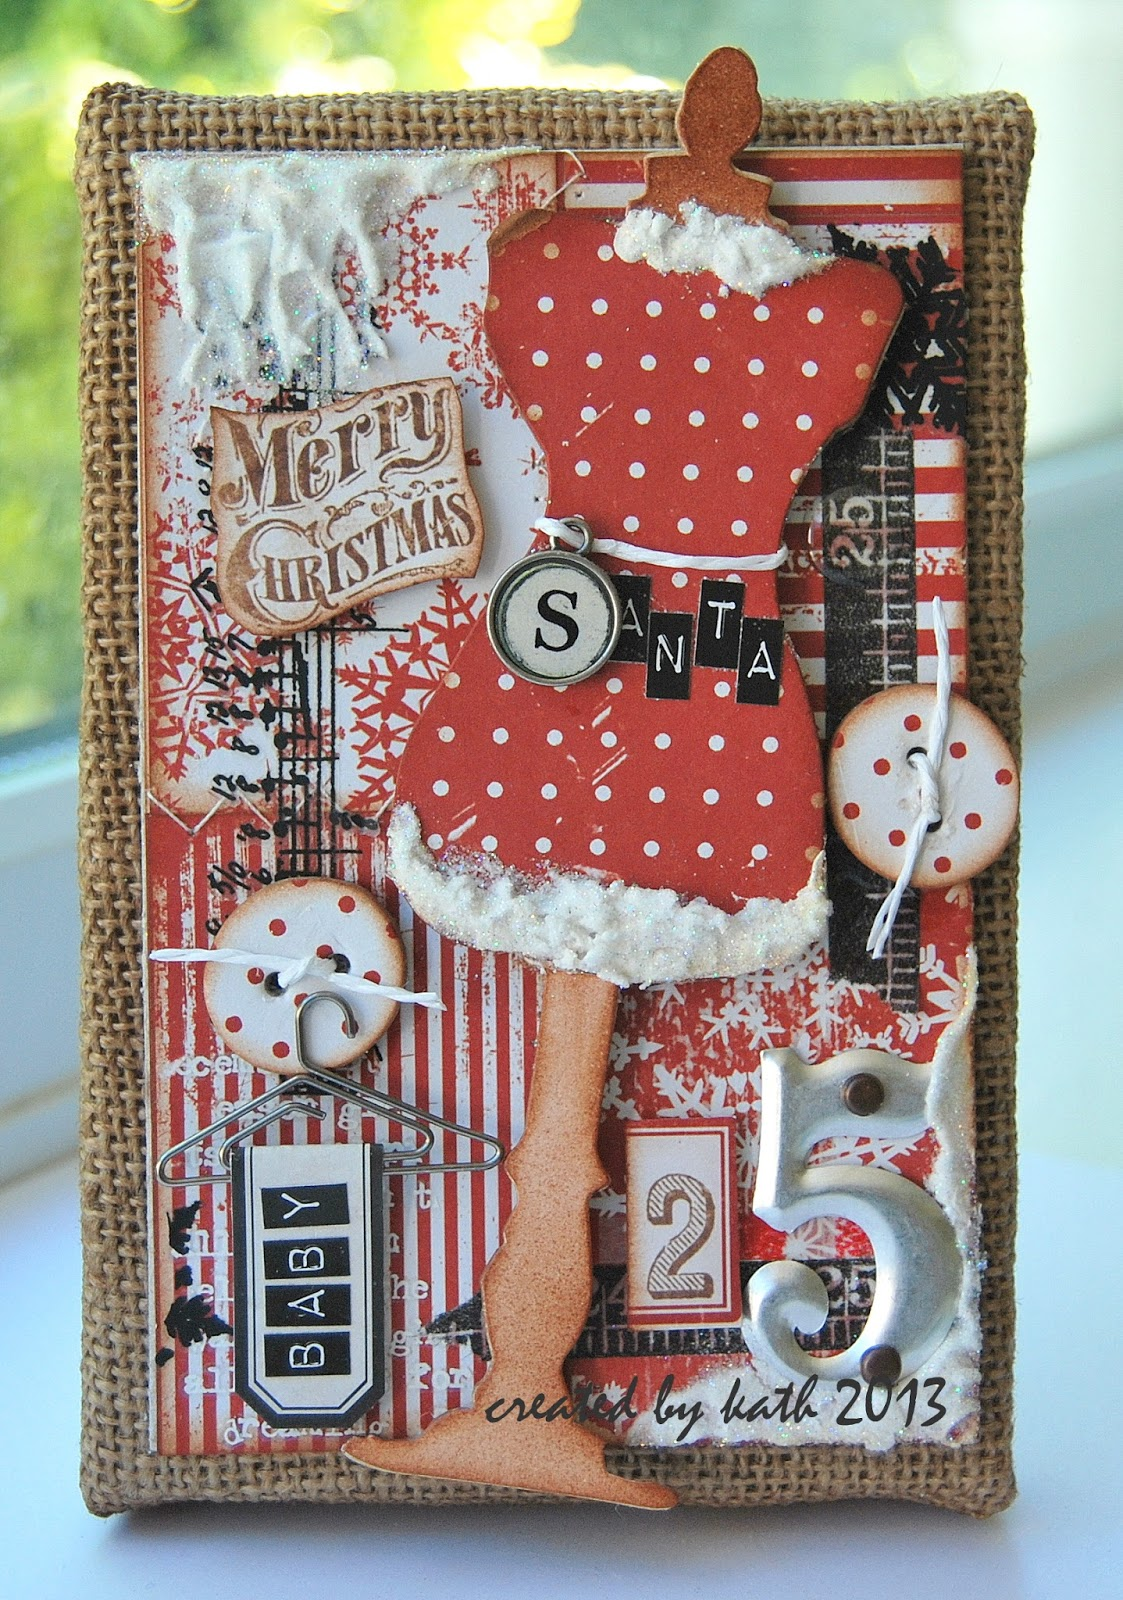 Kaths Blogdiary Of The Everyday Life Of A Crafter Santa Baby